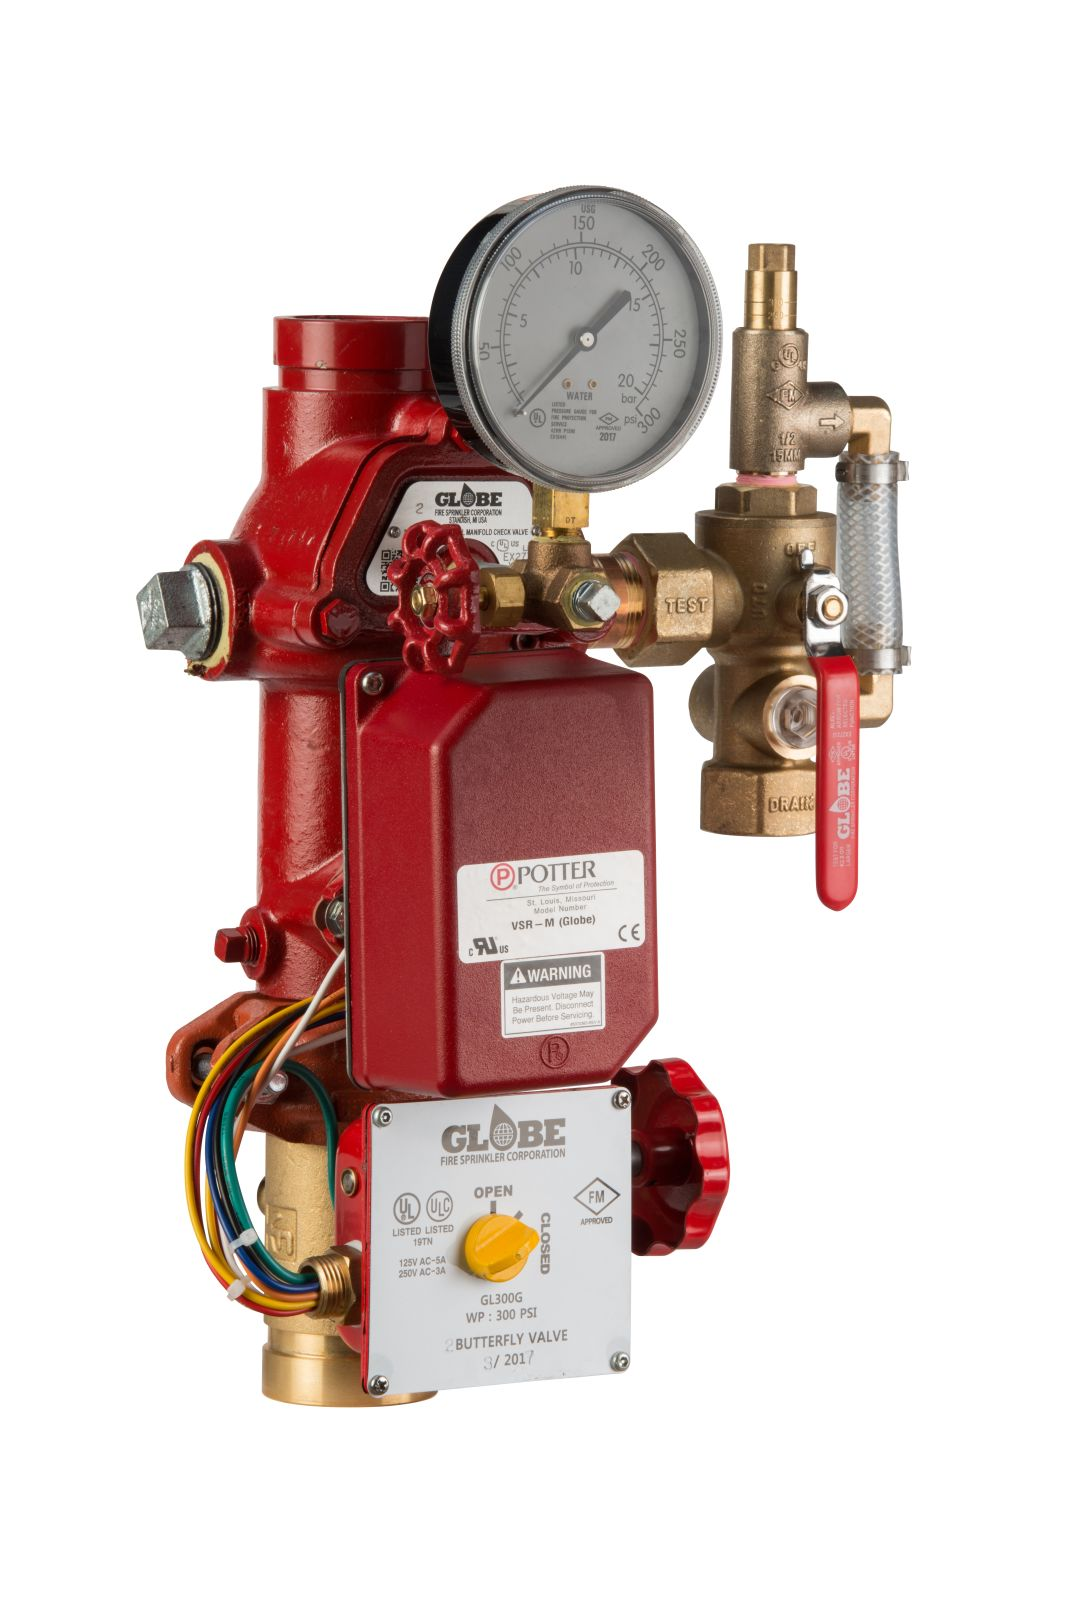 Why Should You Connect The Water Flow Switch To The Alarm System